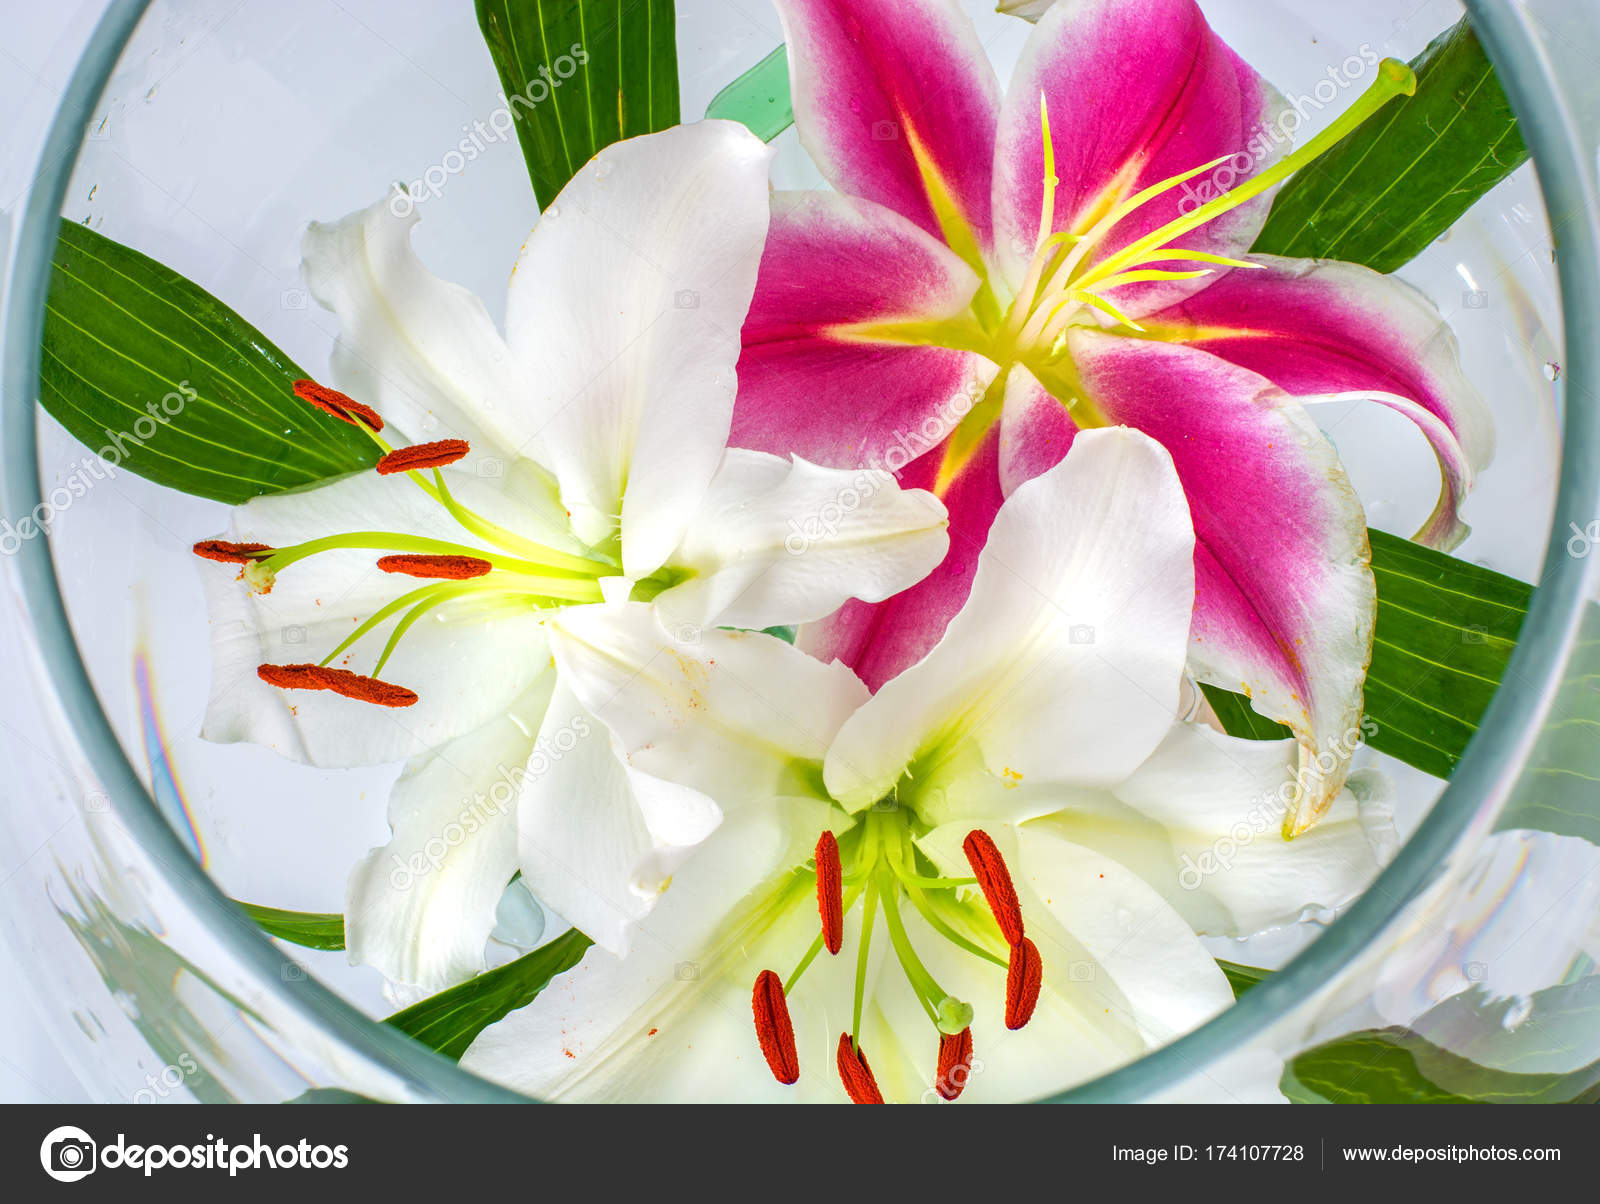 Beautiful large flowers of lilies in a glass on a white background beautiful large flowers of lilies in a glass on a white background isolate photo by juliza03 izmirmasajfo